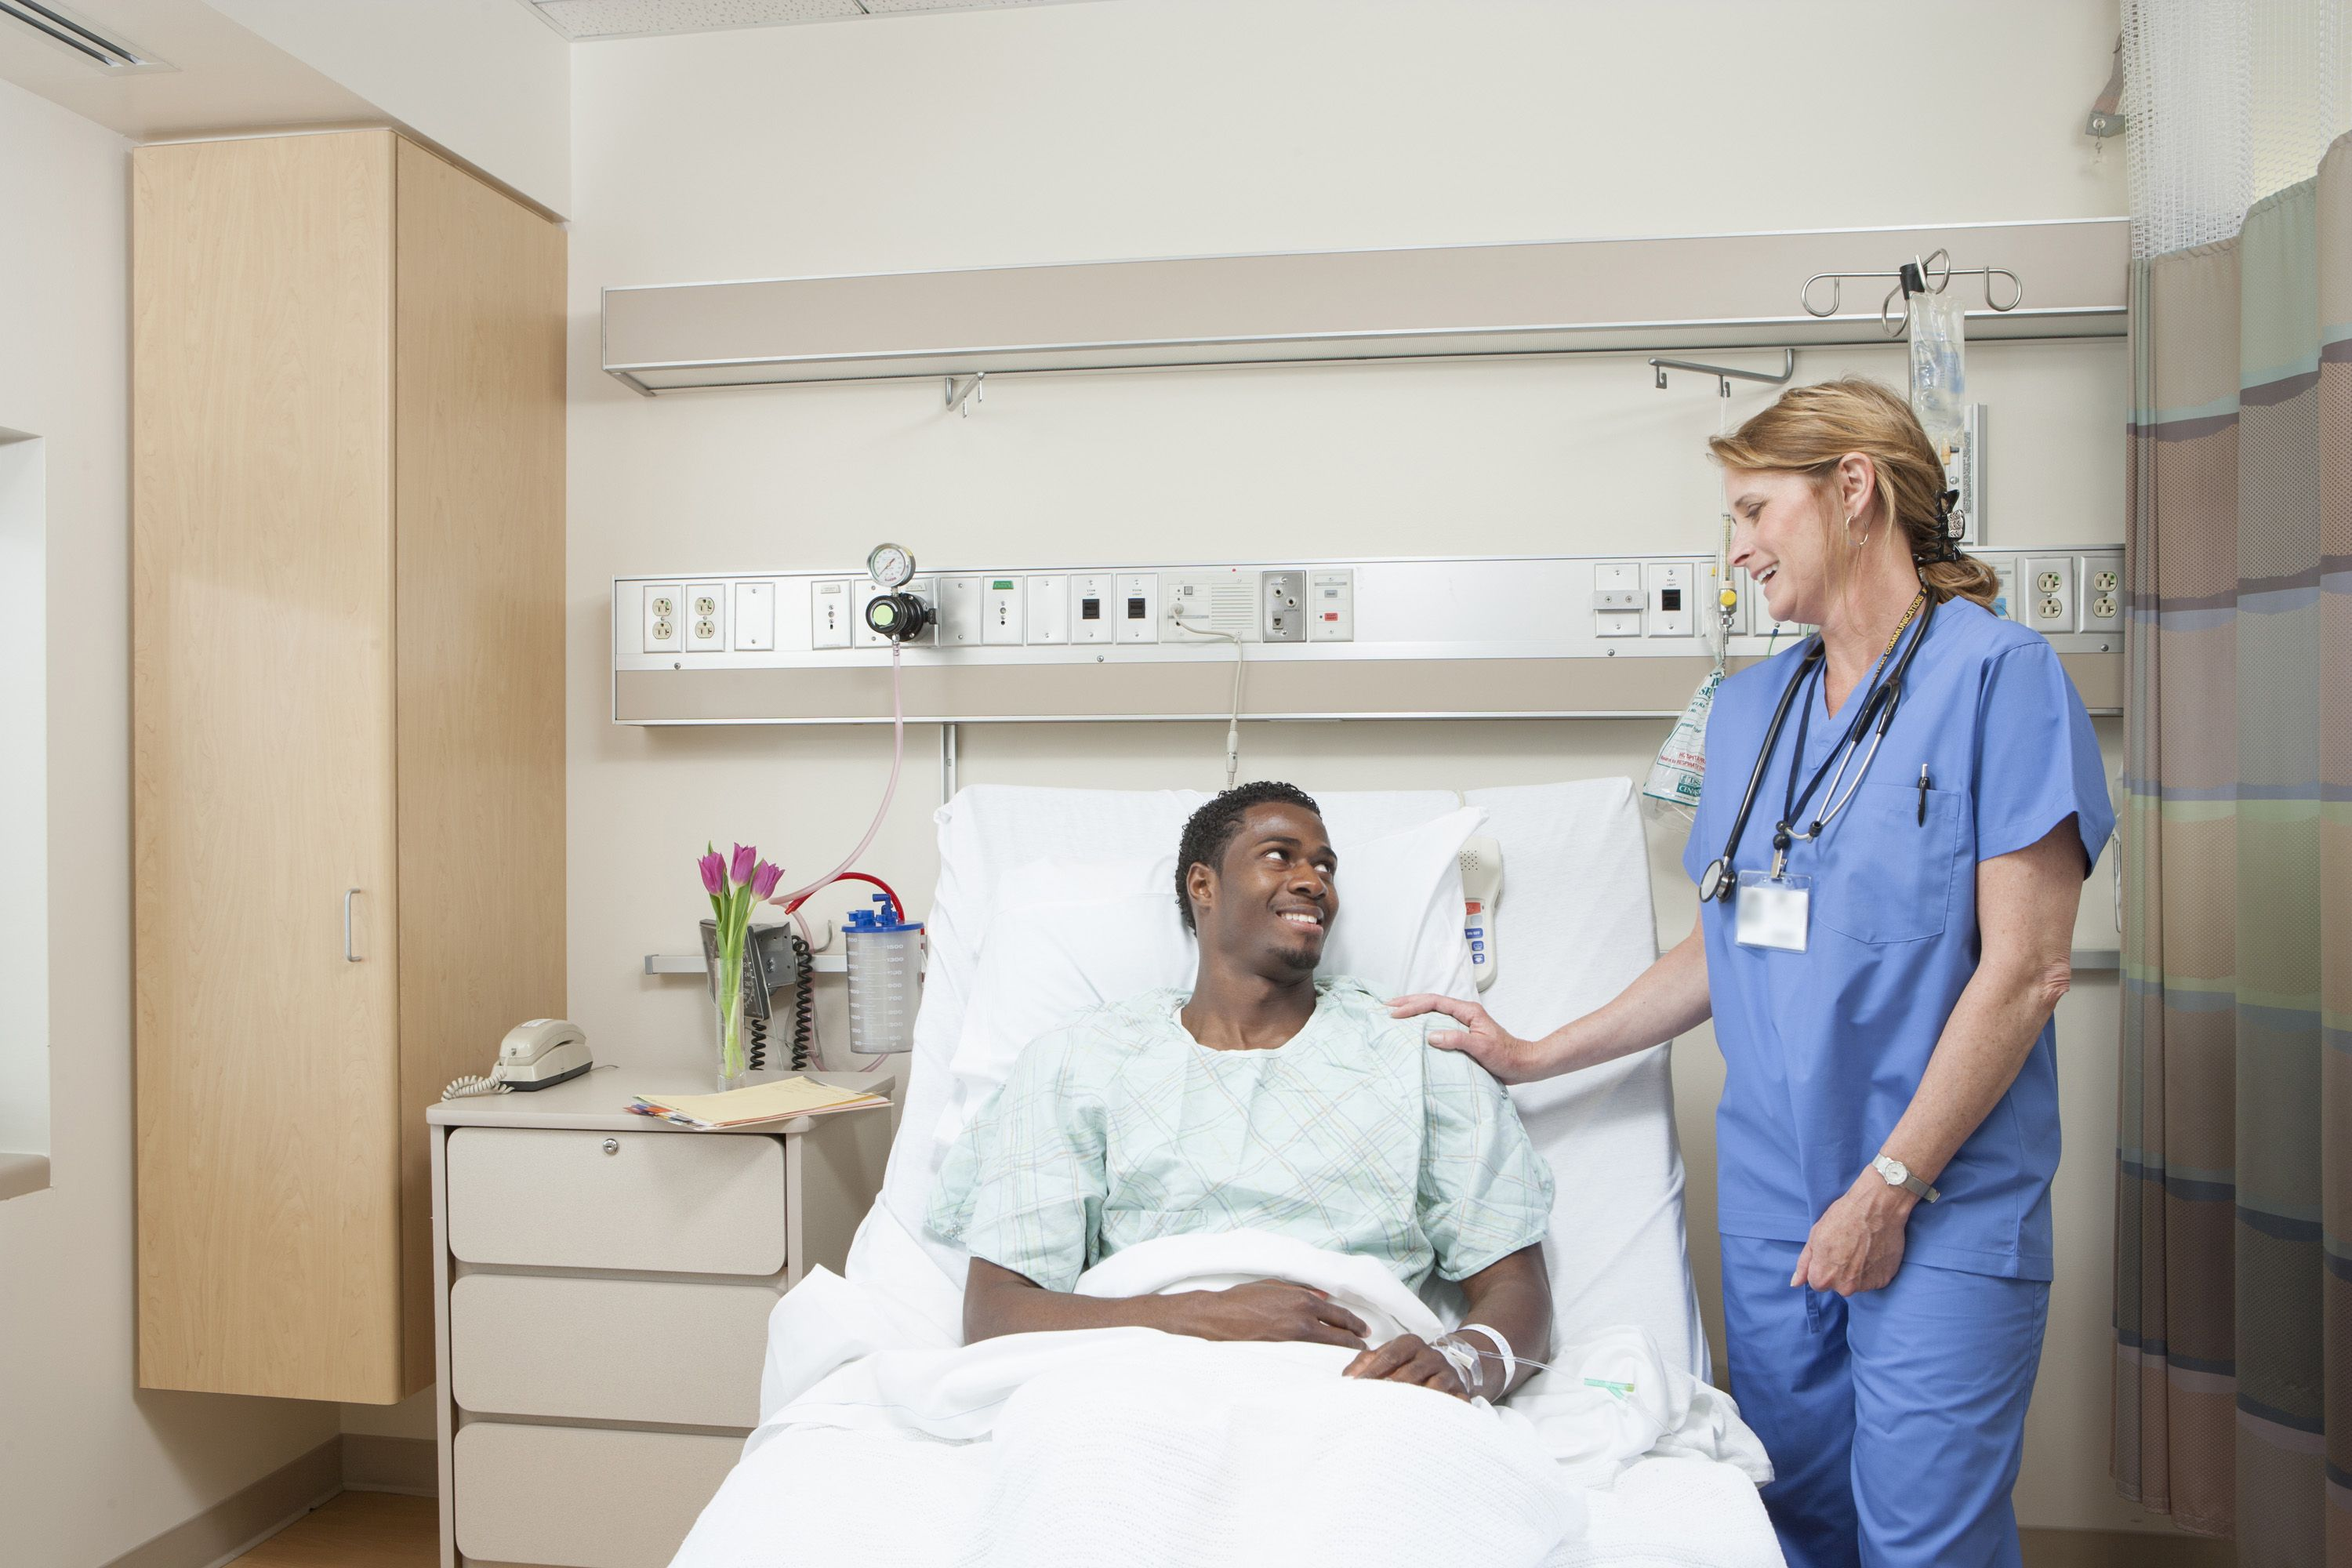 USI's PARTNERSHIPS TO INCREASE NO. OF NURSES IN DUBOIS, GUIBSON COUNTIES